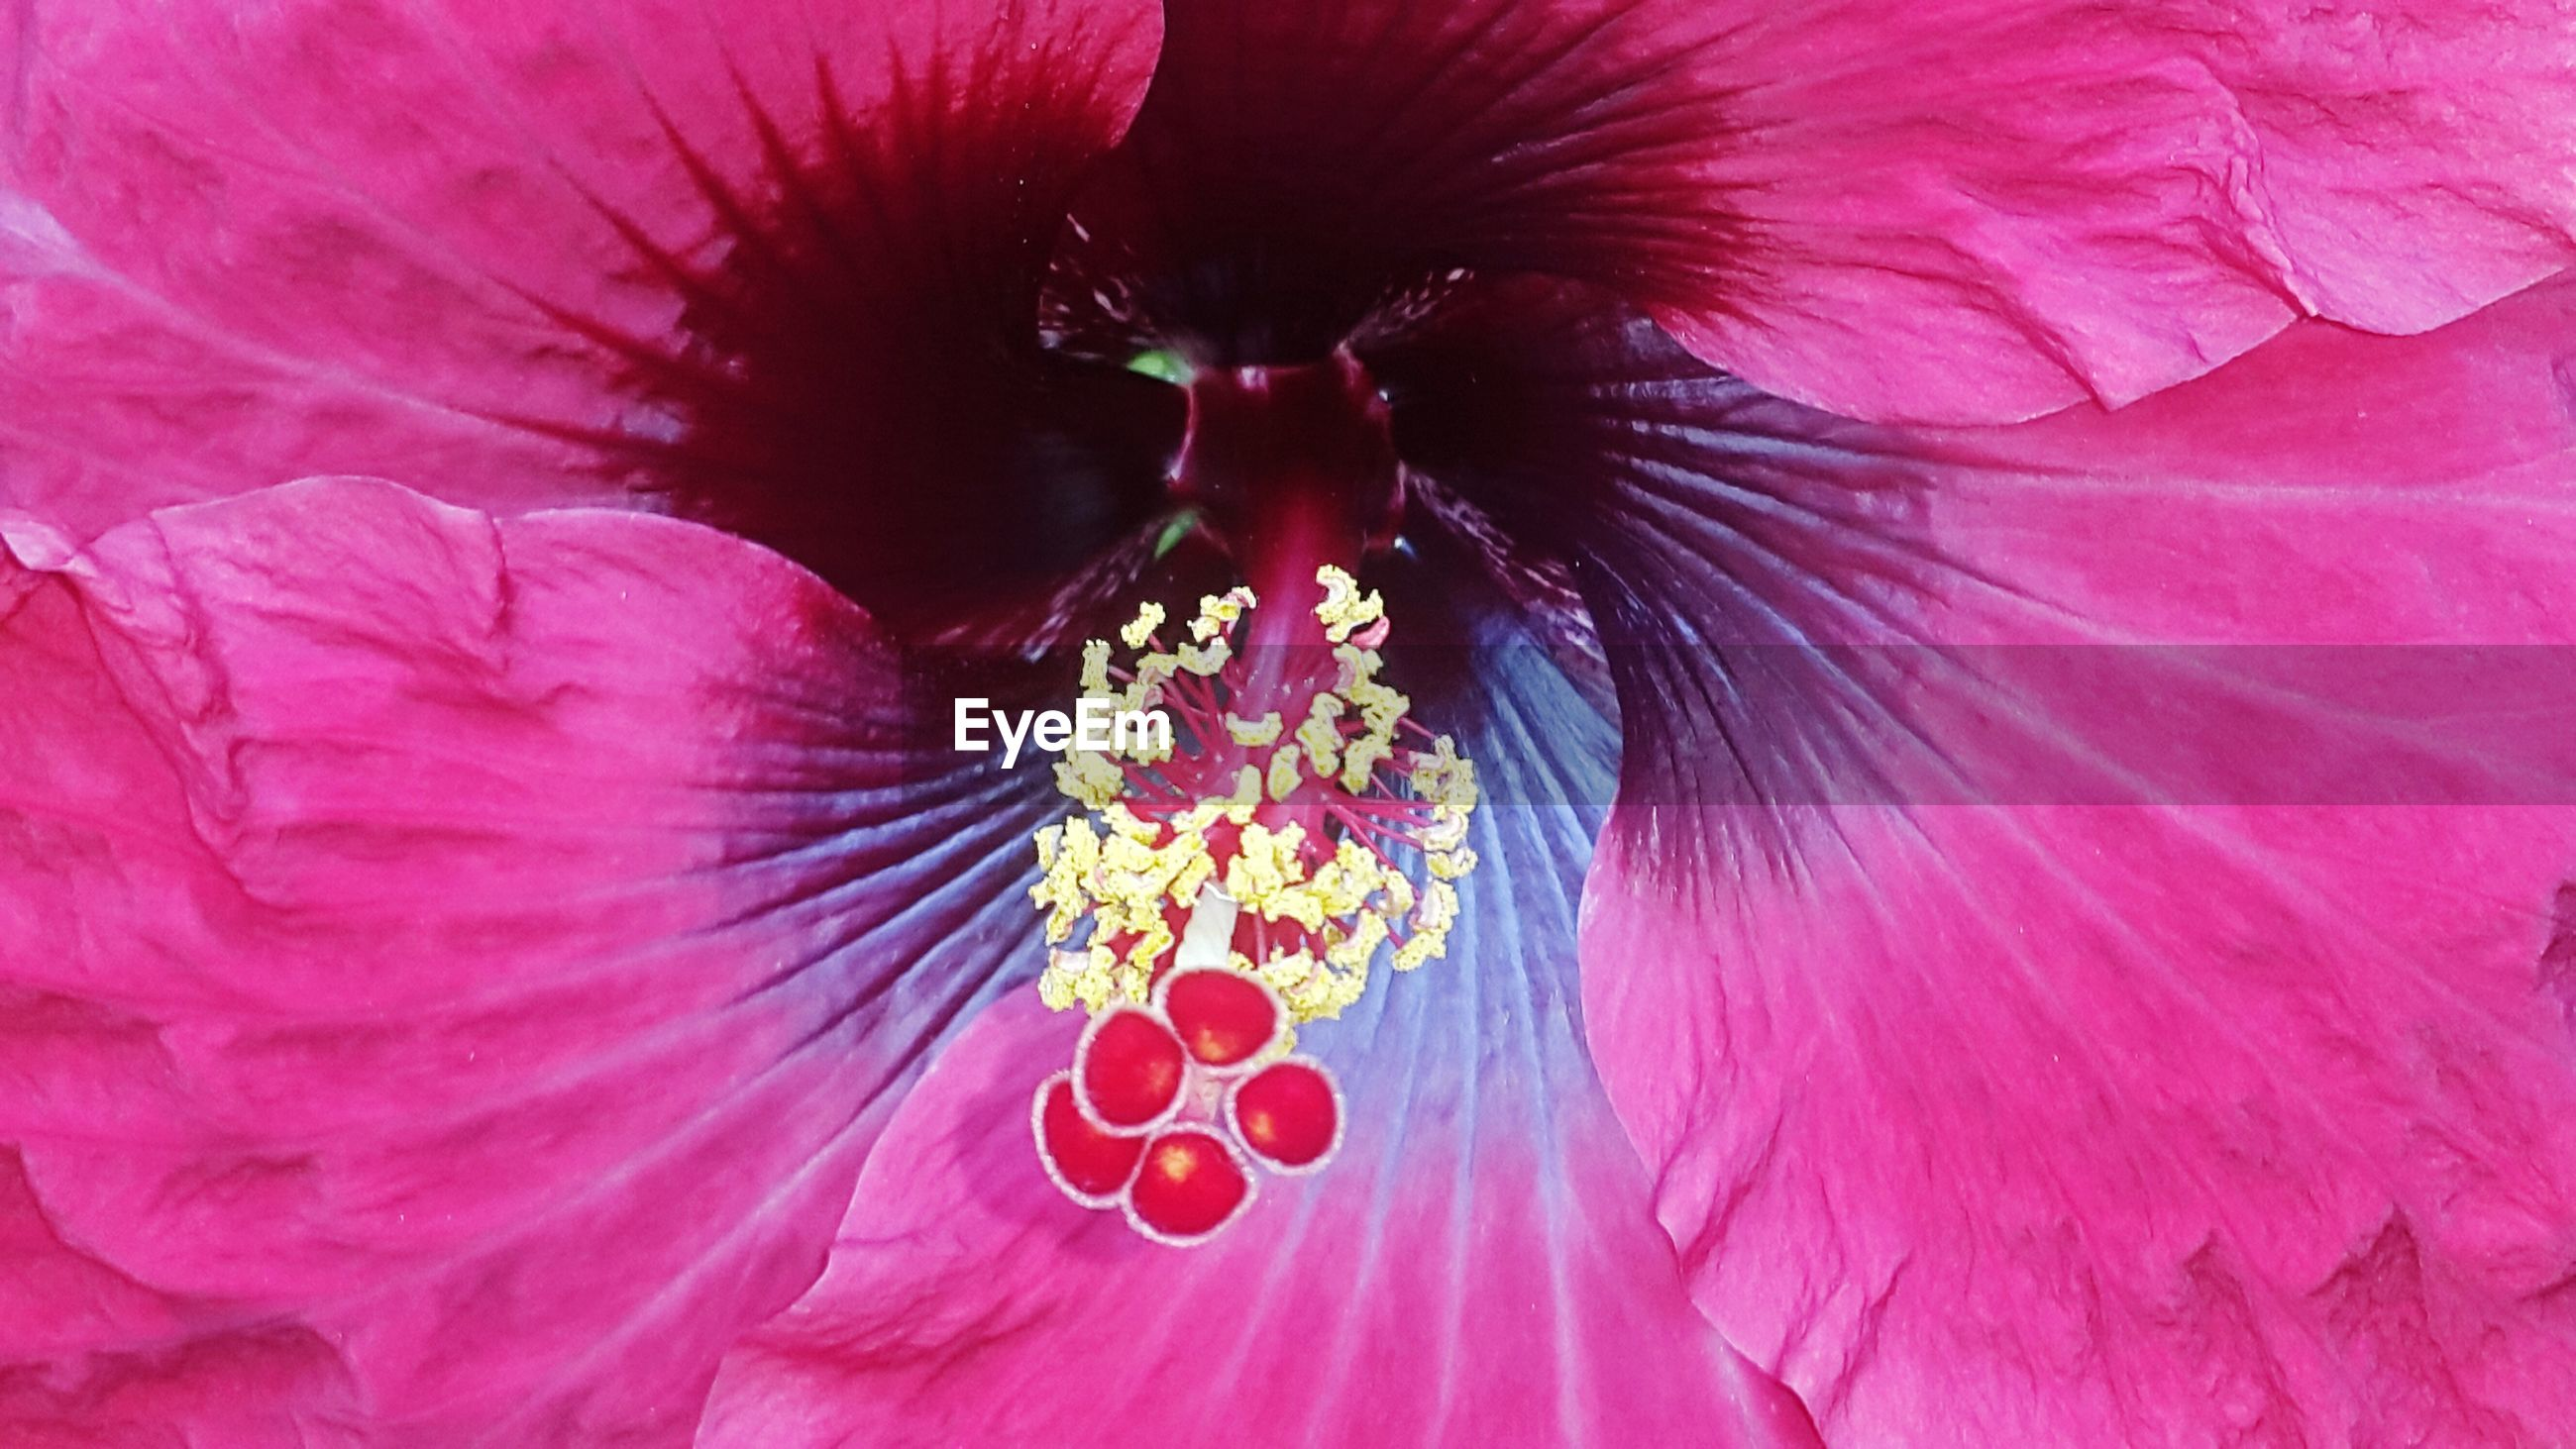 flower, red, pink color, close-up, full frame, flower head, petal, backgrounds, extreme close-up, fragility, single flower, beauty in nature, freshness, nature, natural pattern, part of, pink, outdoors, pollen, no people